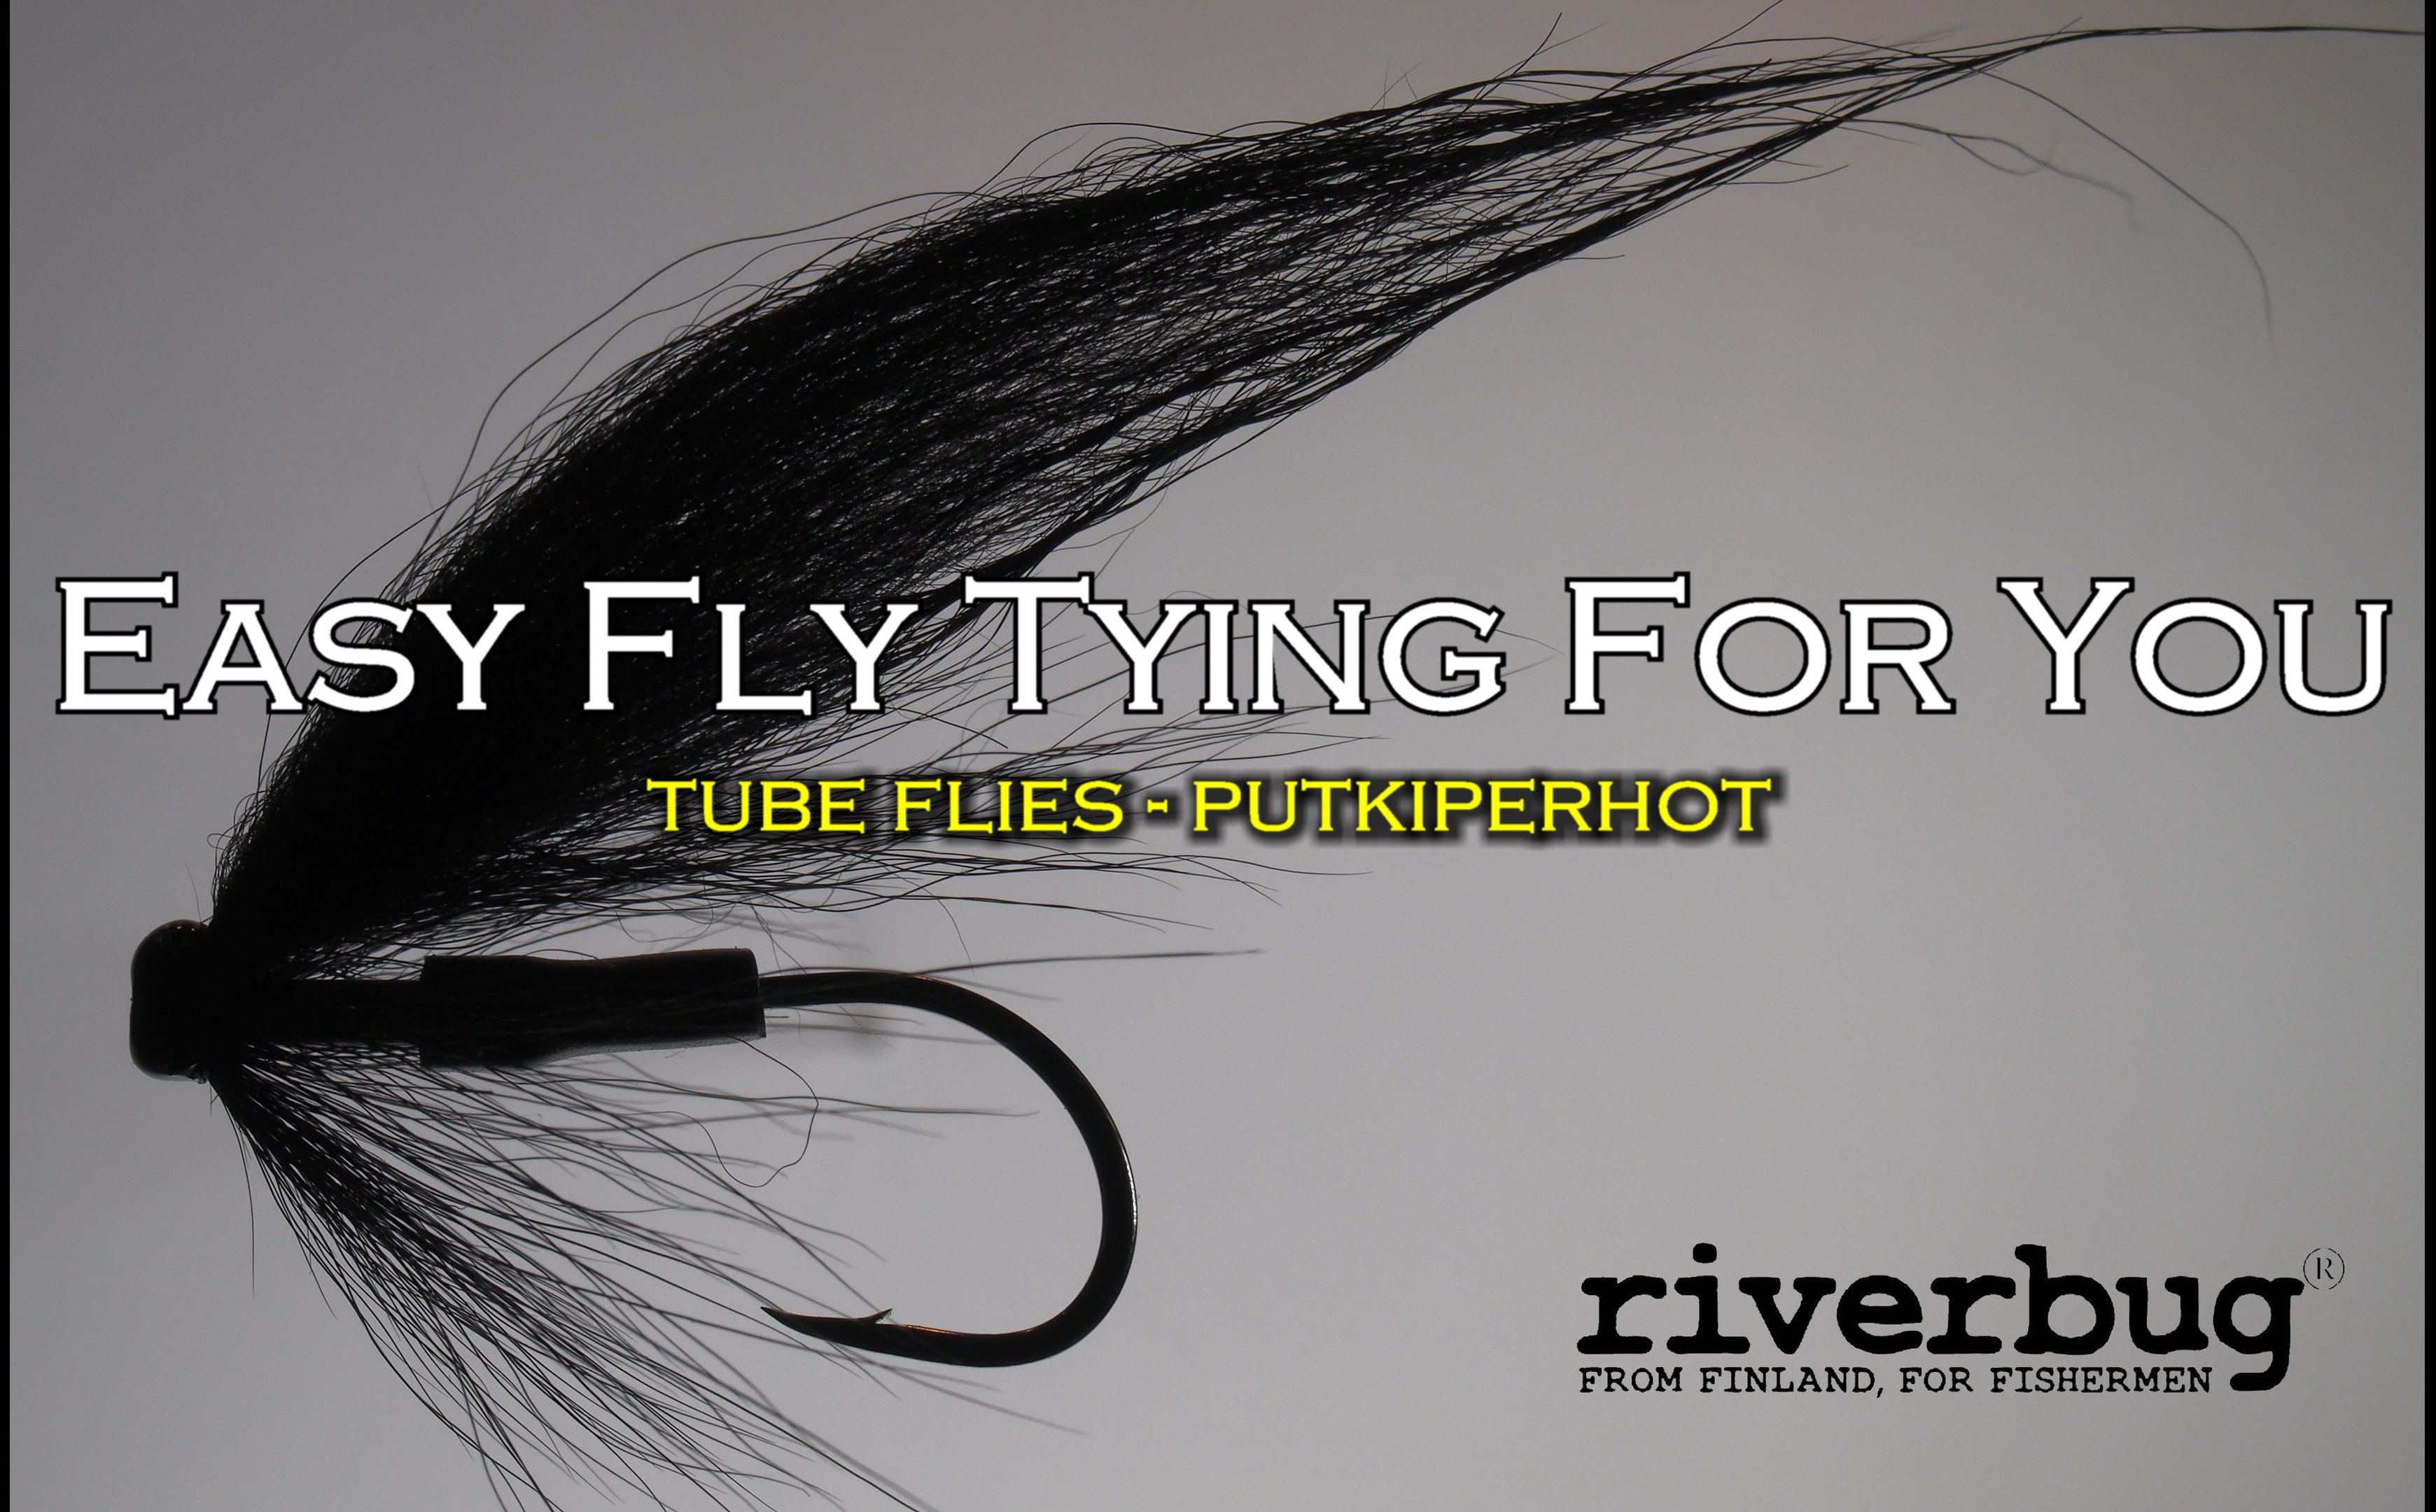 Easy Fly Tying with RiverBug tube fly method